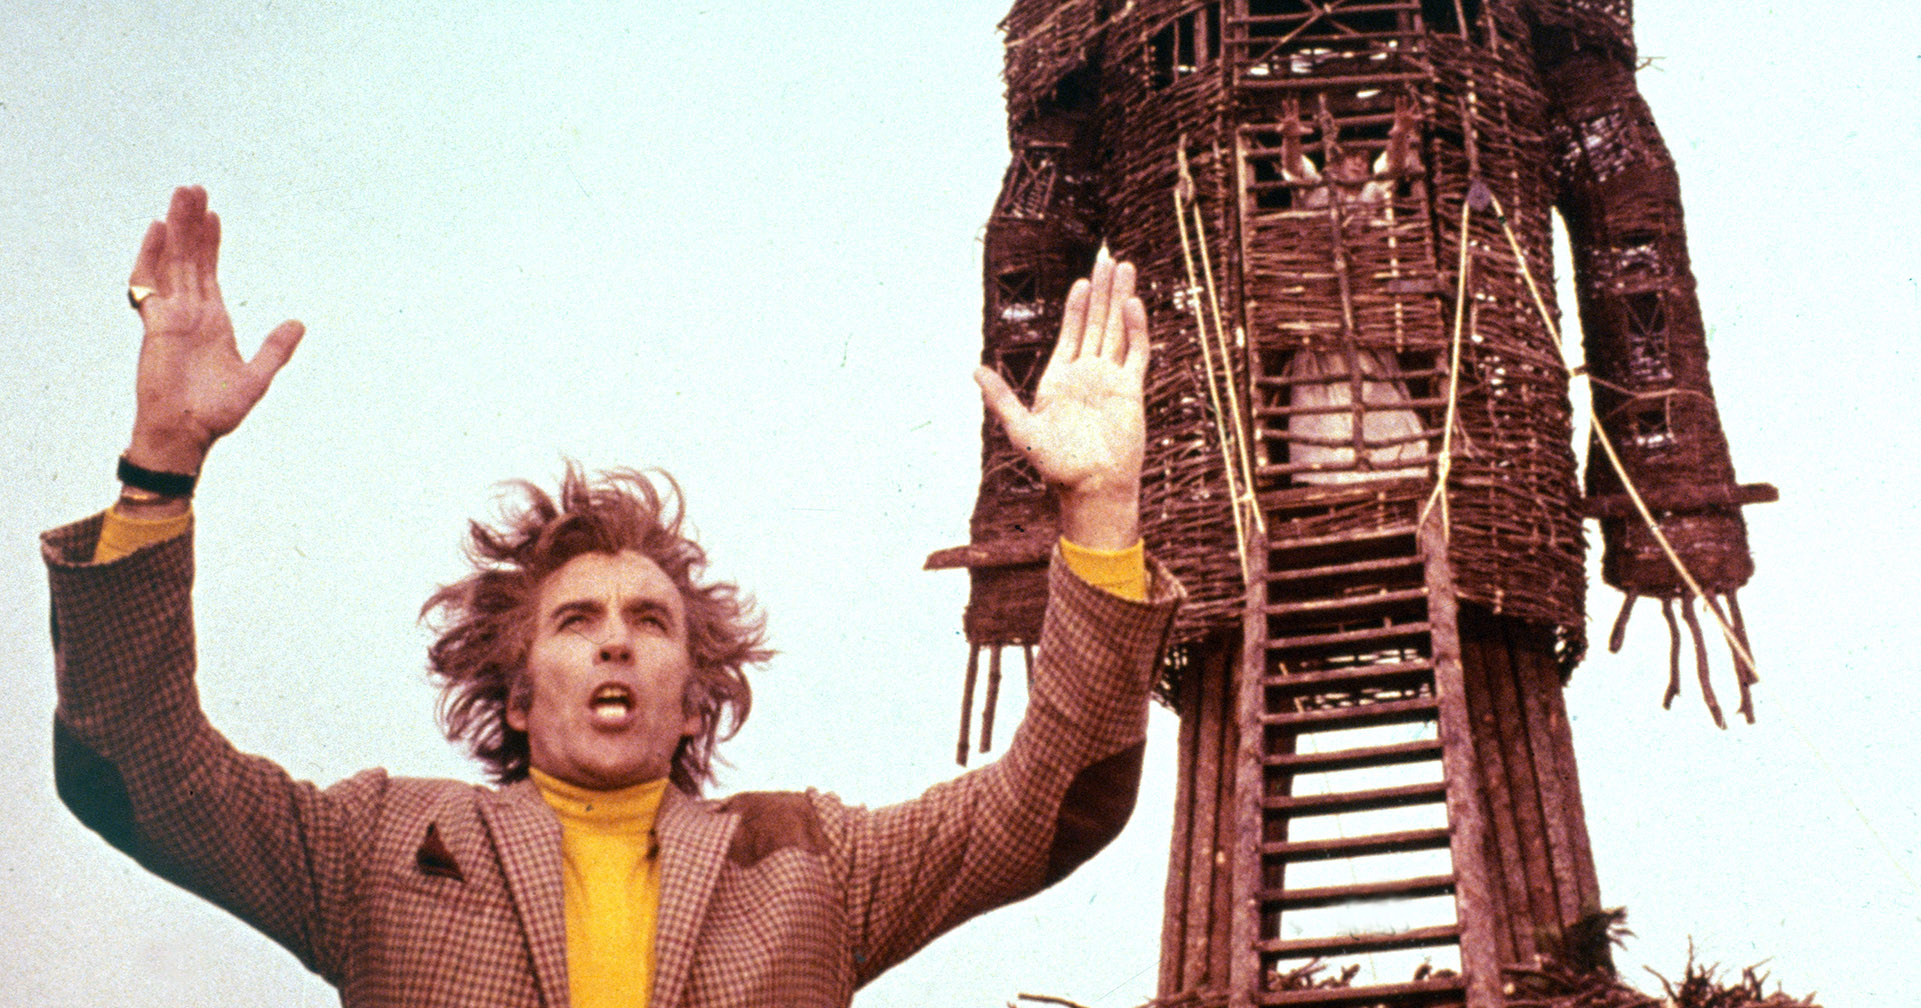 A middle-aged white man in a tweed jacket and yellow turtleneck, his hair blowing wildly in the wind, raise his arms in front of a large man made of wood